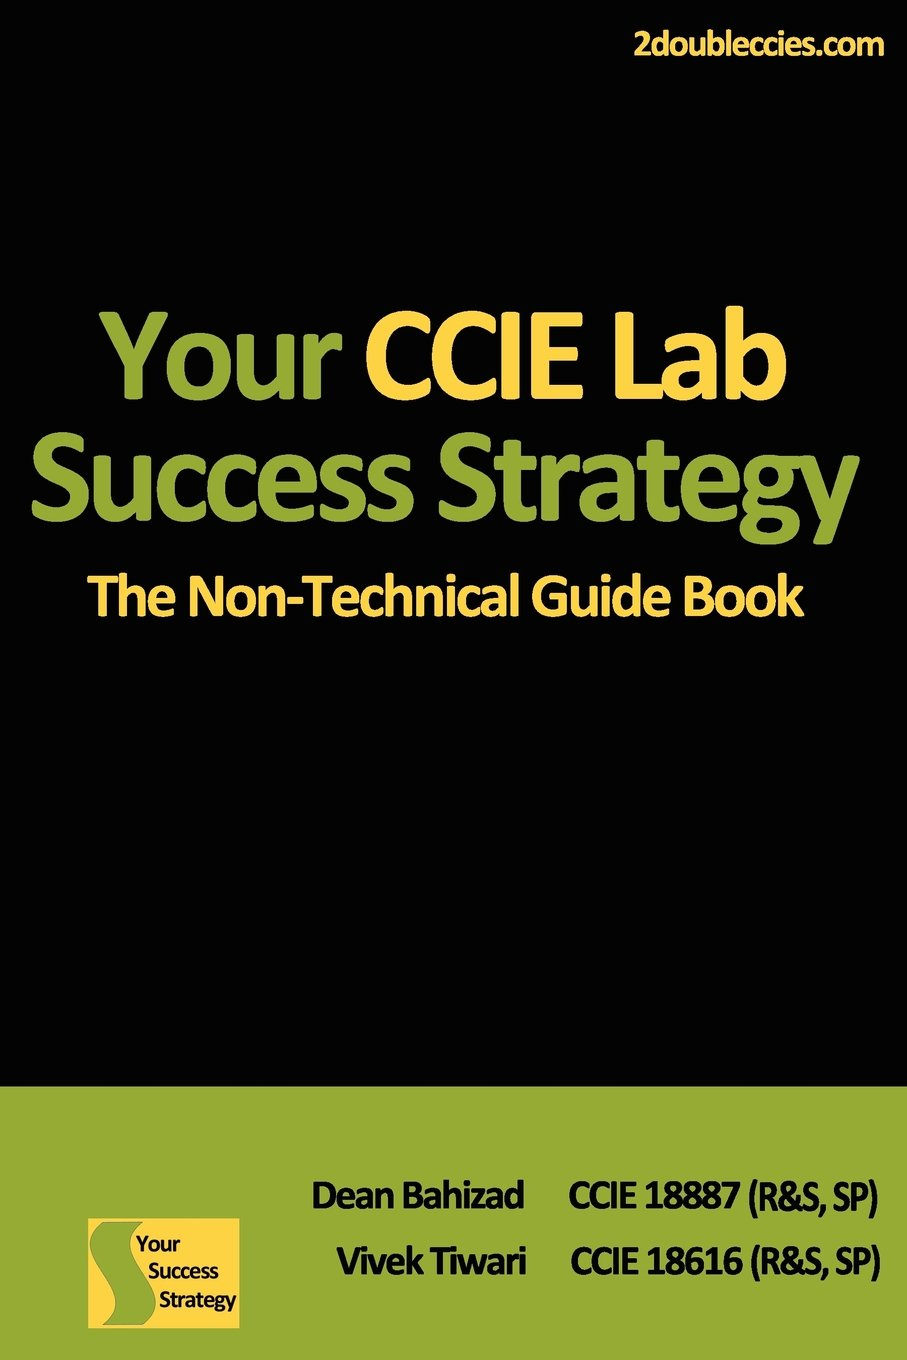 ccnp strategy Ccie is different to ccnp or ccna we all come at it from different backgrounds, with different levels of experience ccie routing and switching lab strategy.